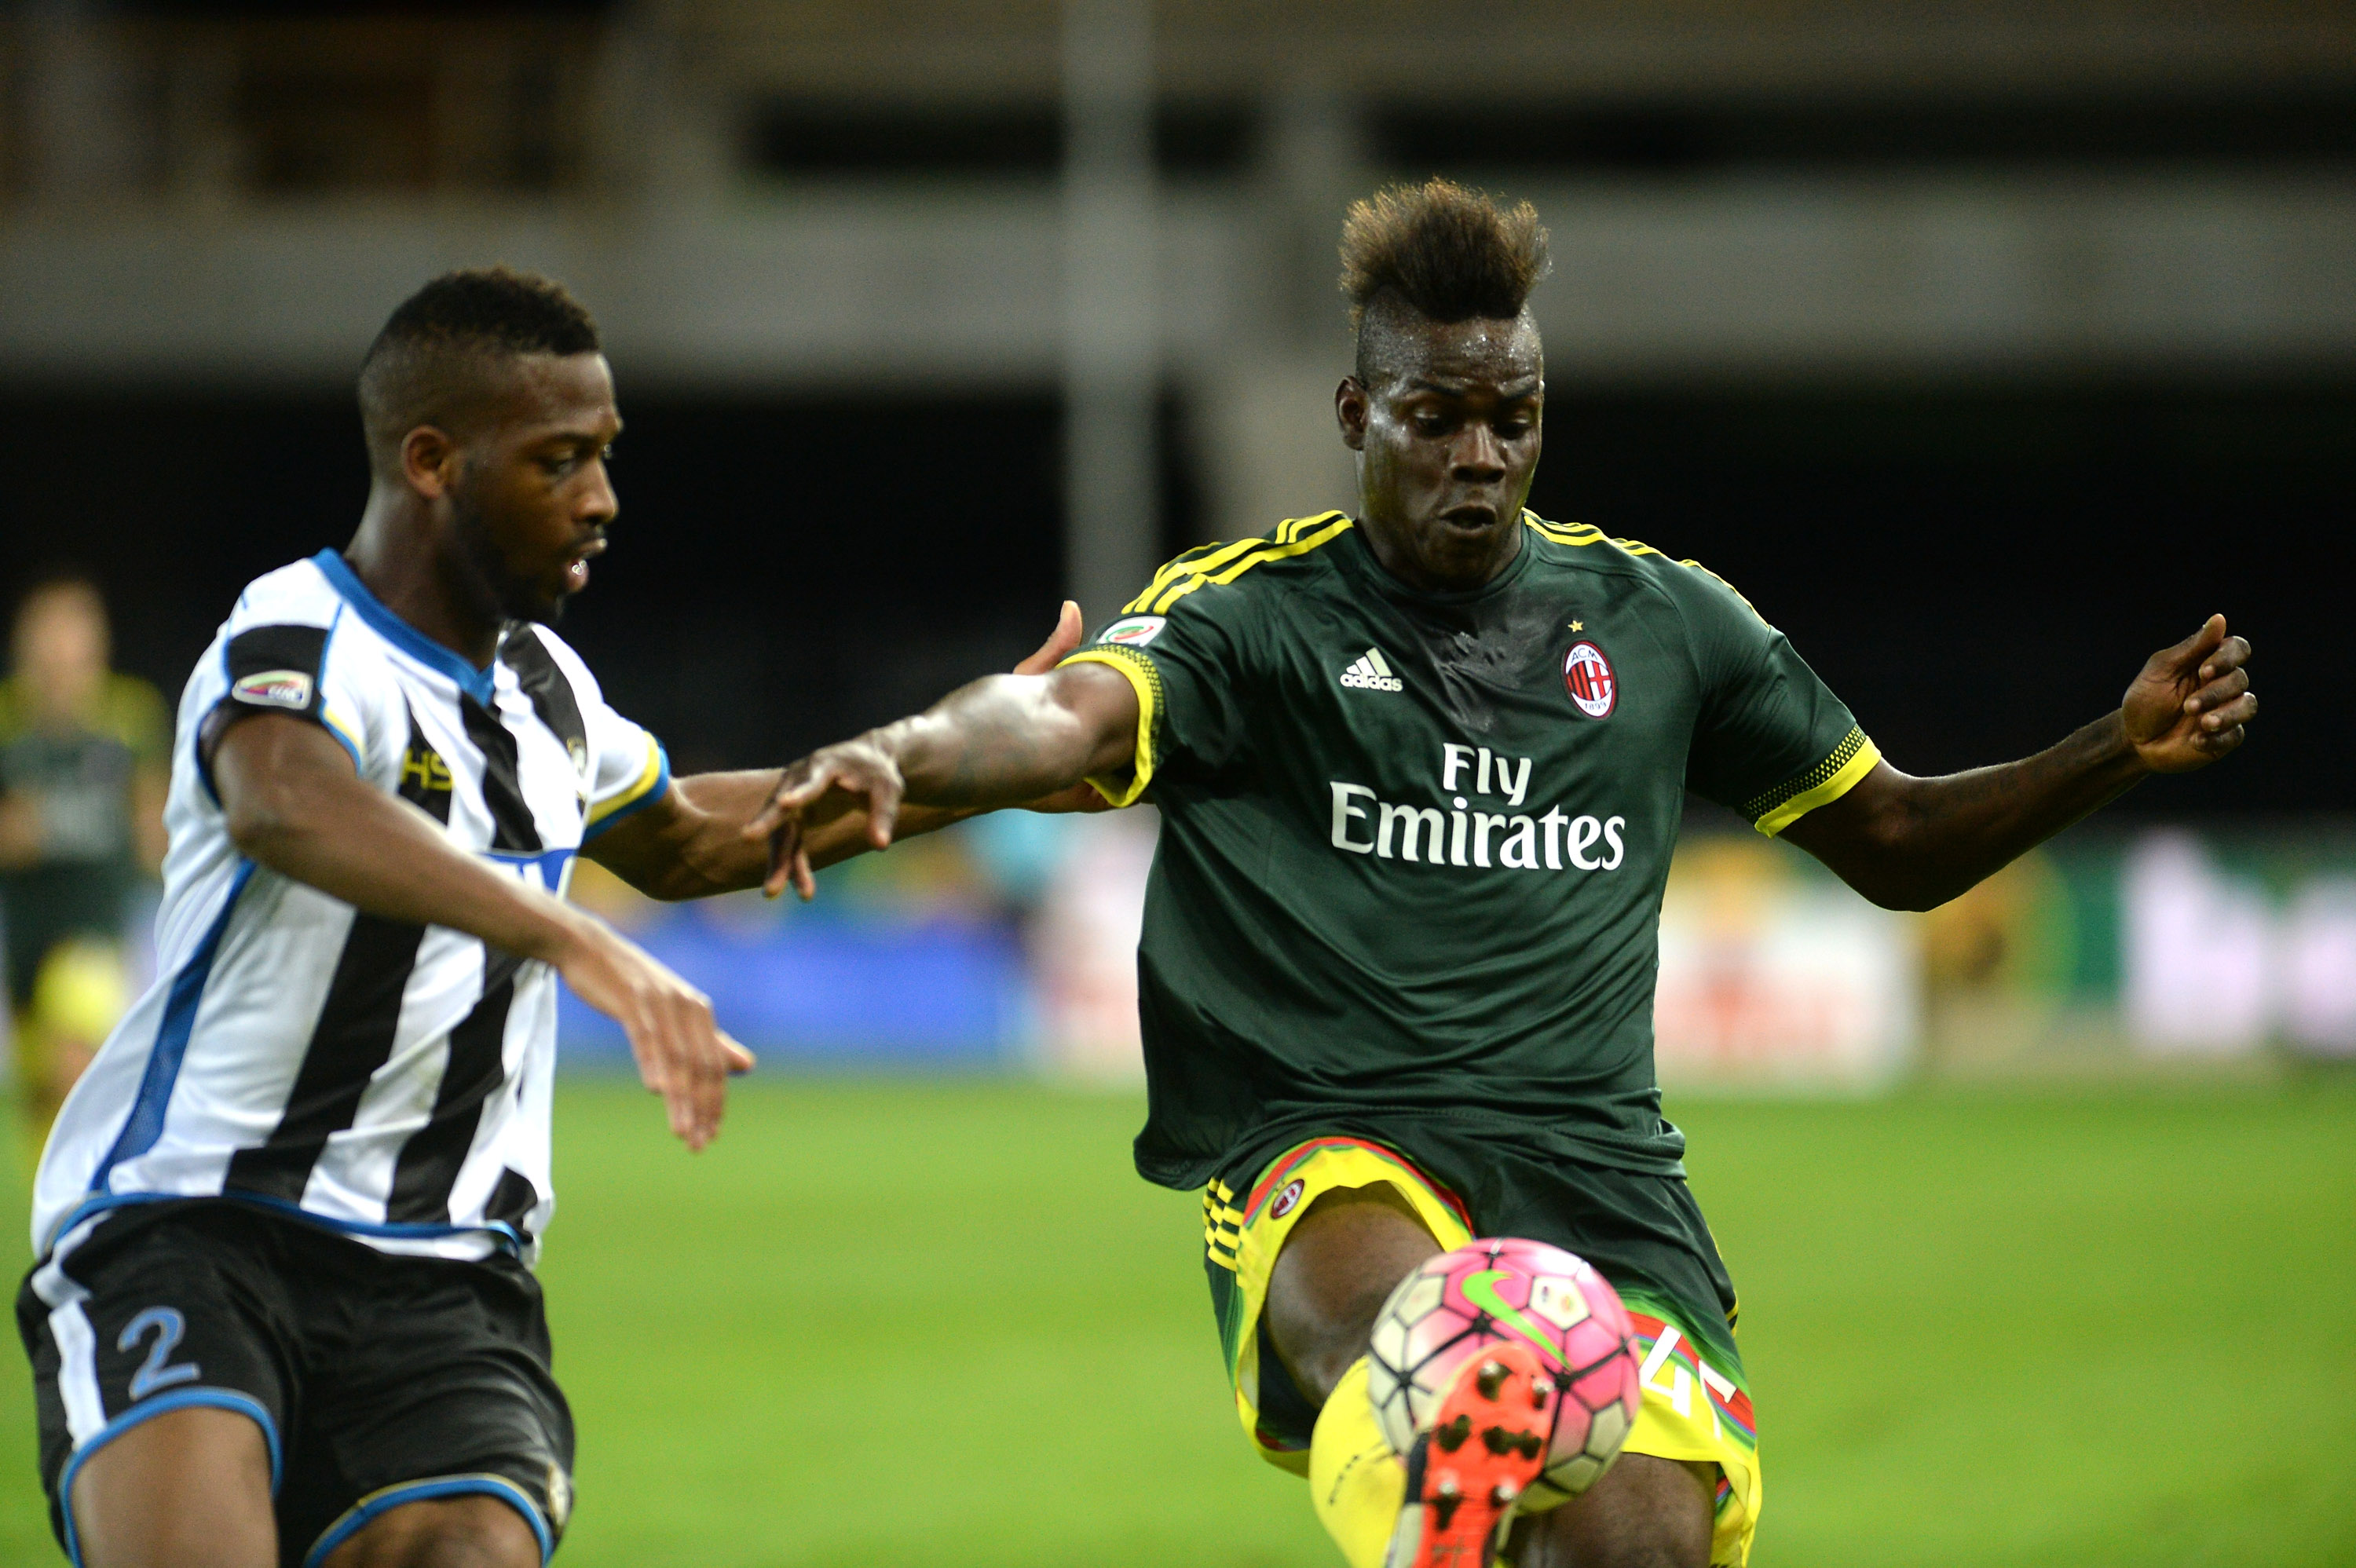 UDINE, ITALY - SEPTEMBER 22:  Molla Wague (L) of Udinese Calcio competes  with Mario Balotelli of AC Milan during the Serie A match between Udinese Calcio and AC Milan at Stadio Friuli on September 22, 2015 in Udine, Italy.  (Photo by Dino Panato/Getty Images)